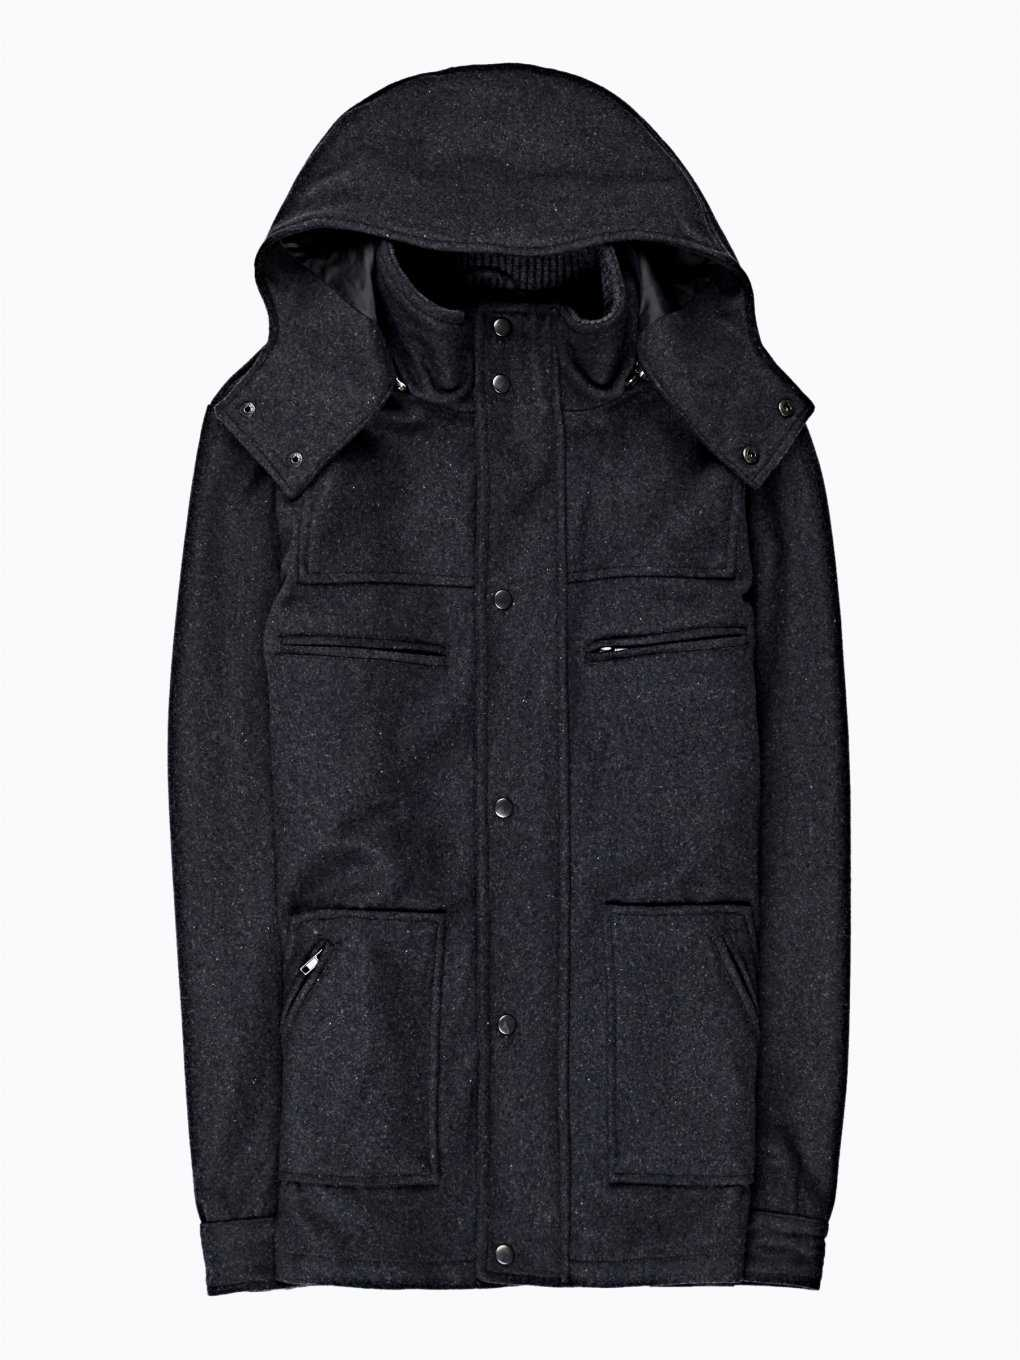 HOODED COAT IN WOOL BLEND